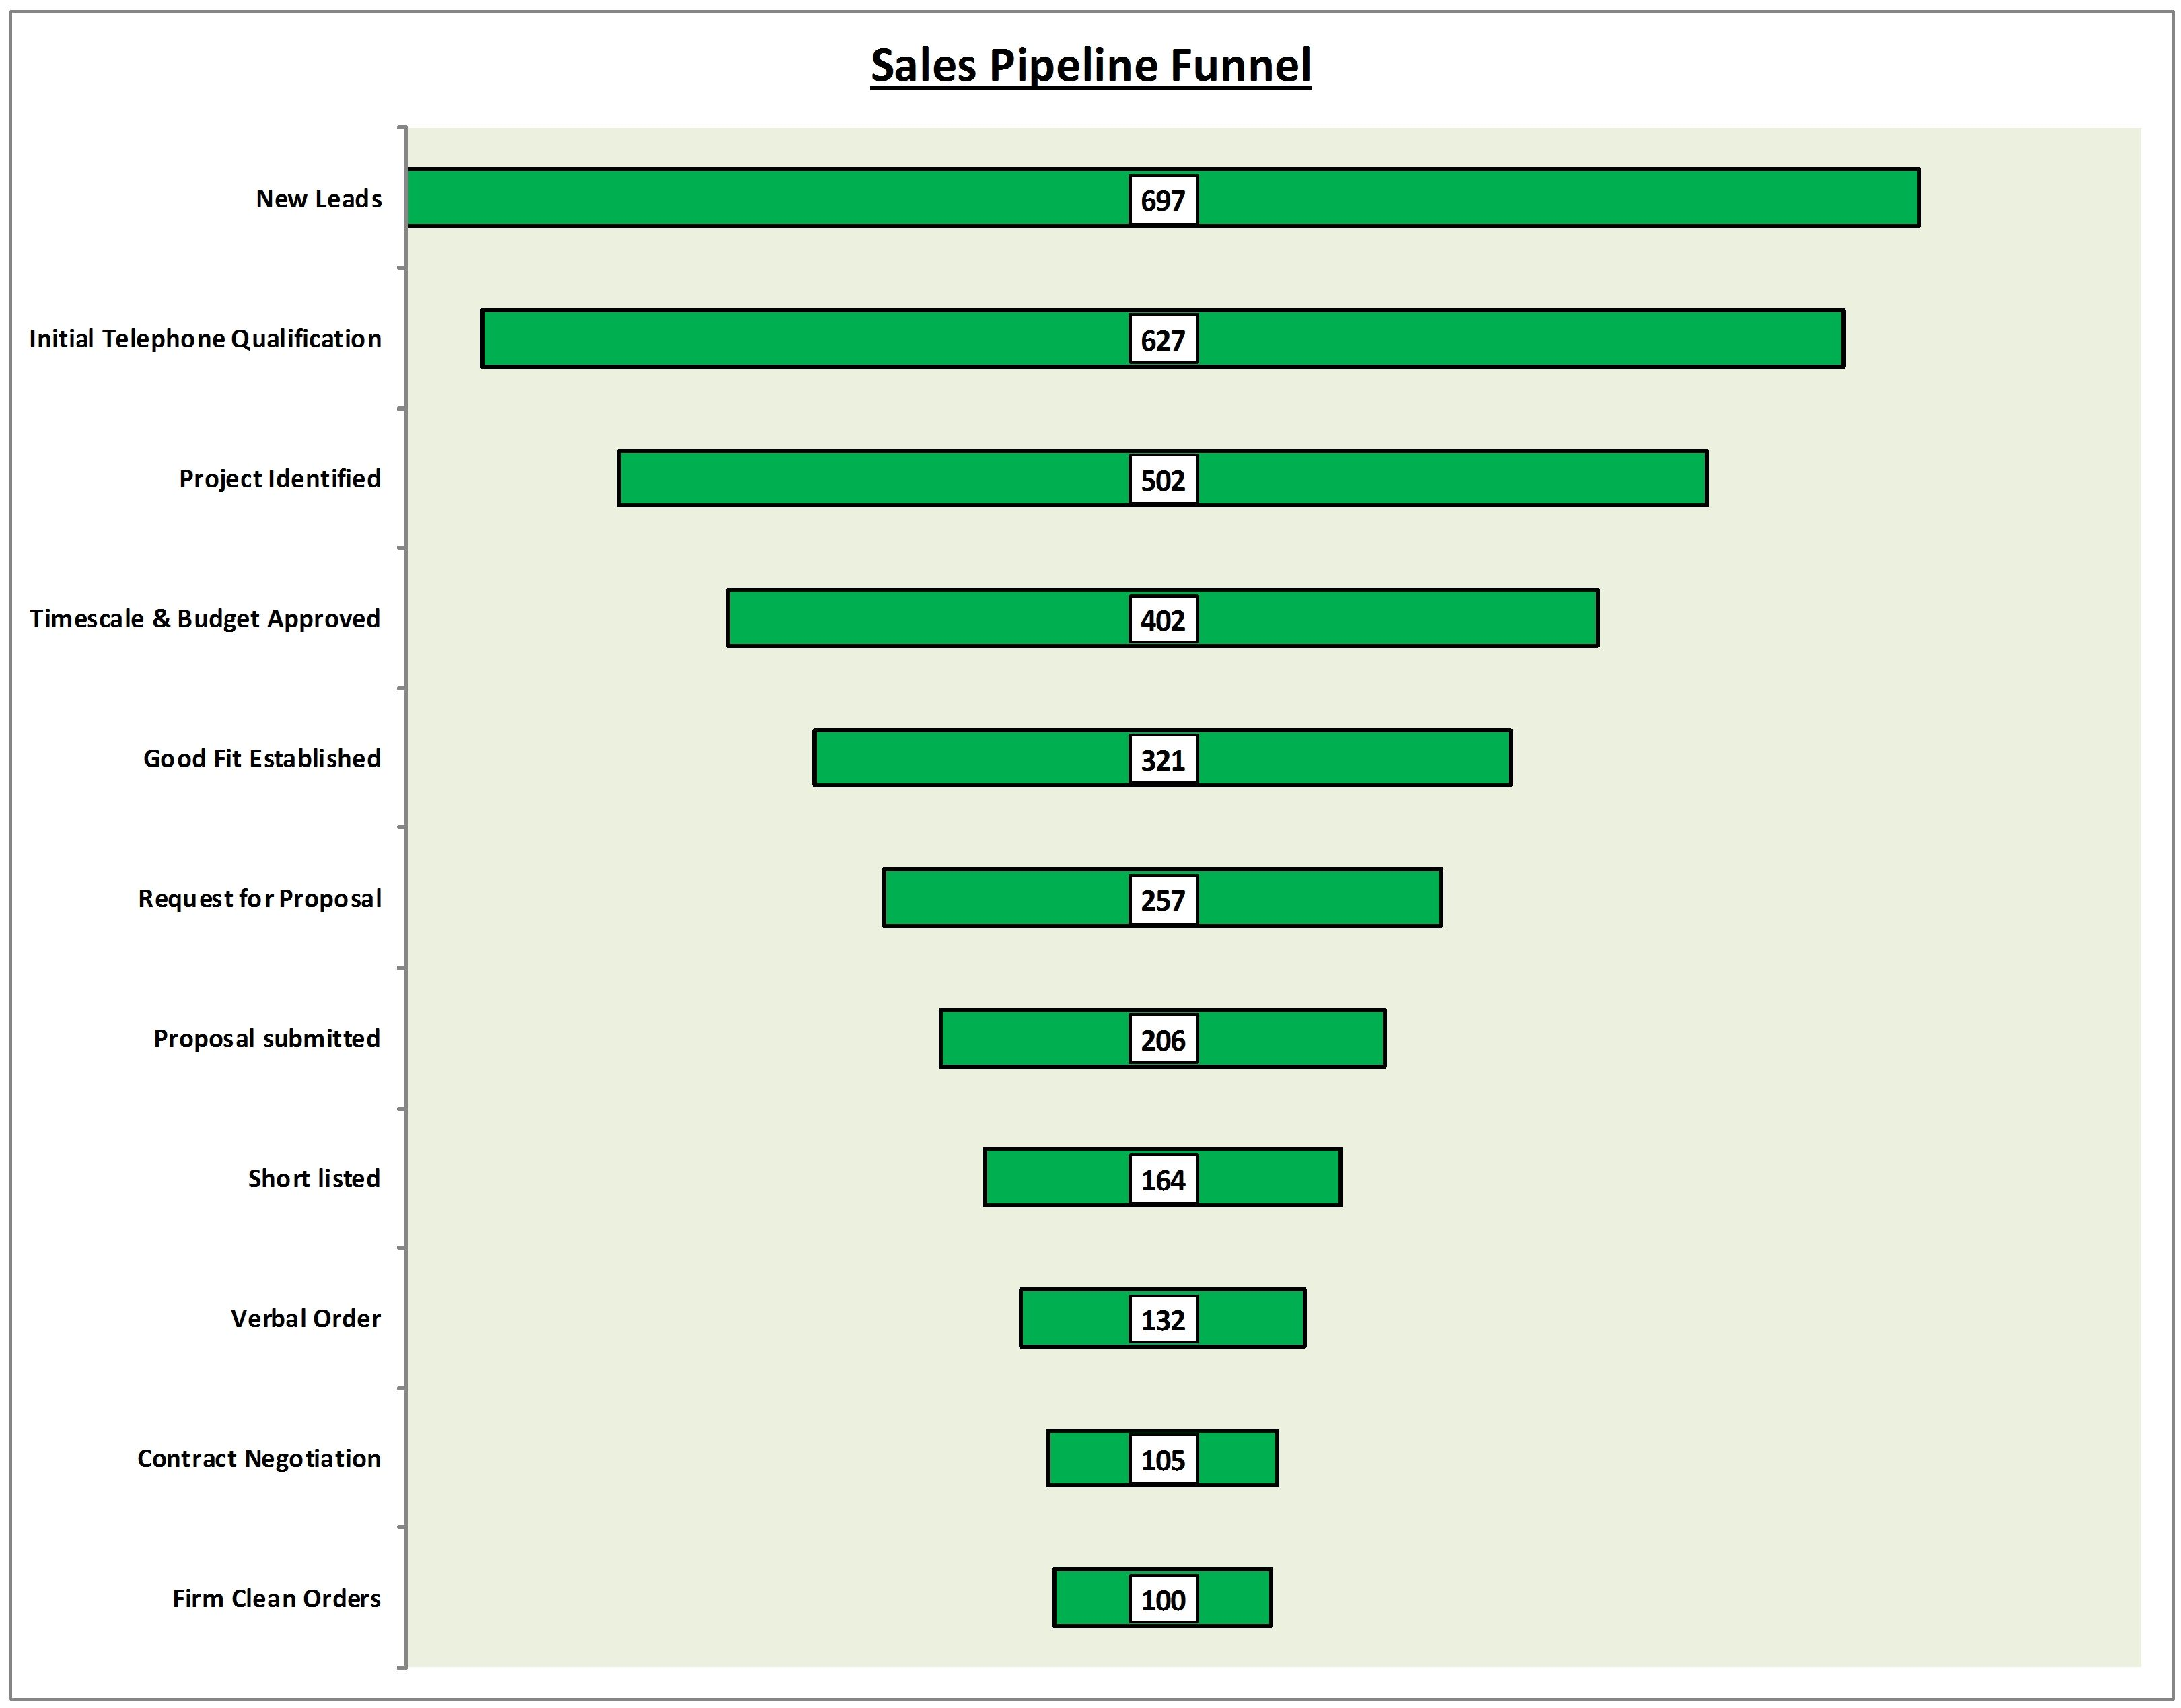 Sales Pipeline Funnel Graphic Excel Template now in | Tool store